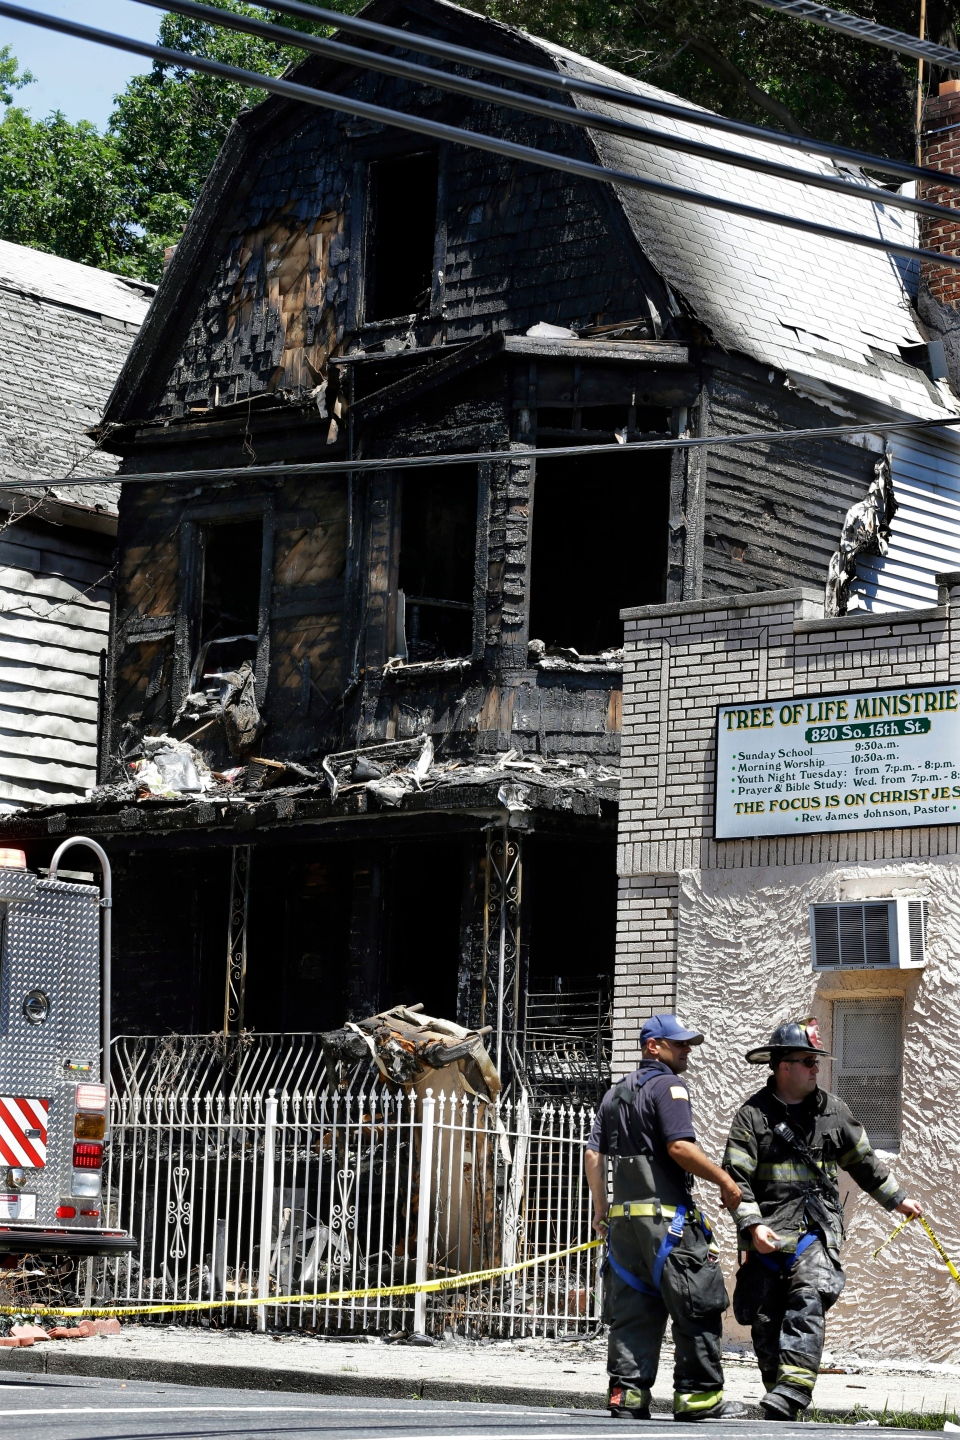 Firefighters and police work near the rubble of a burned-out home as they look for clues to a fire that authorities say killed six people in Newark, N.J., Sunday, June 16, 2014. (AP Photo/Mel Evans)